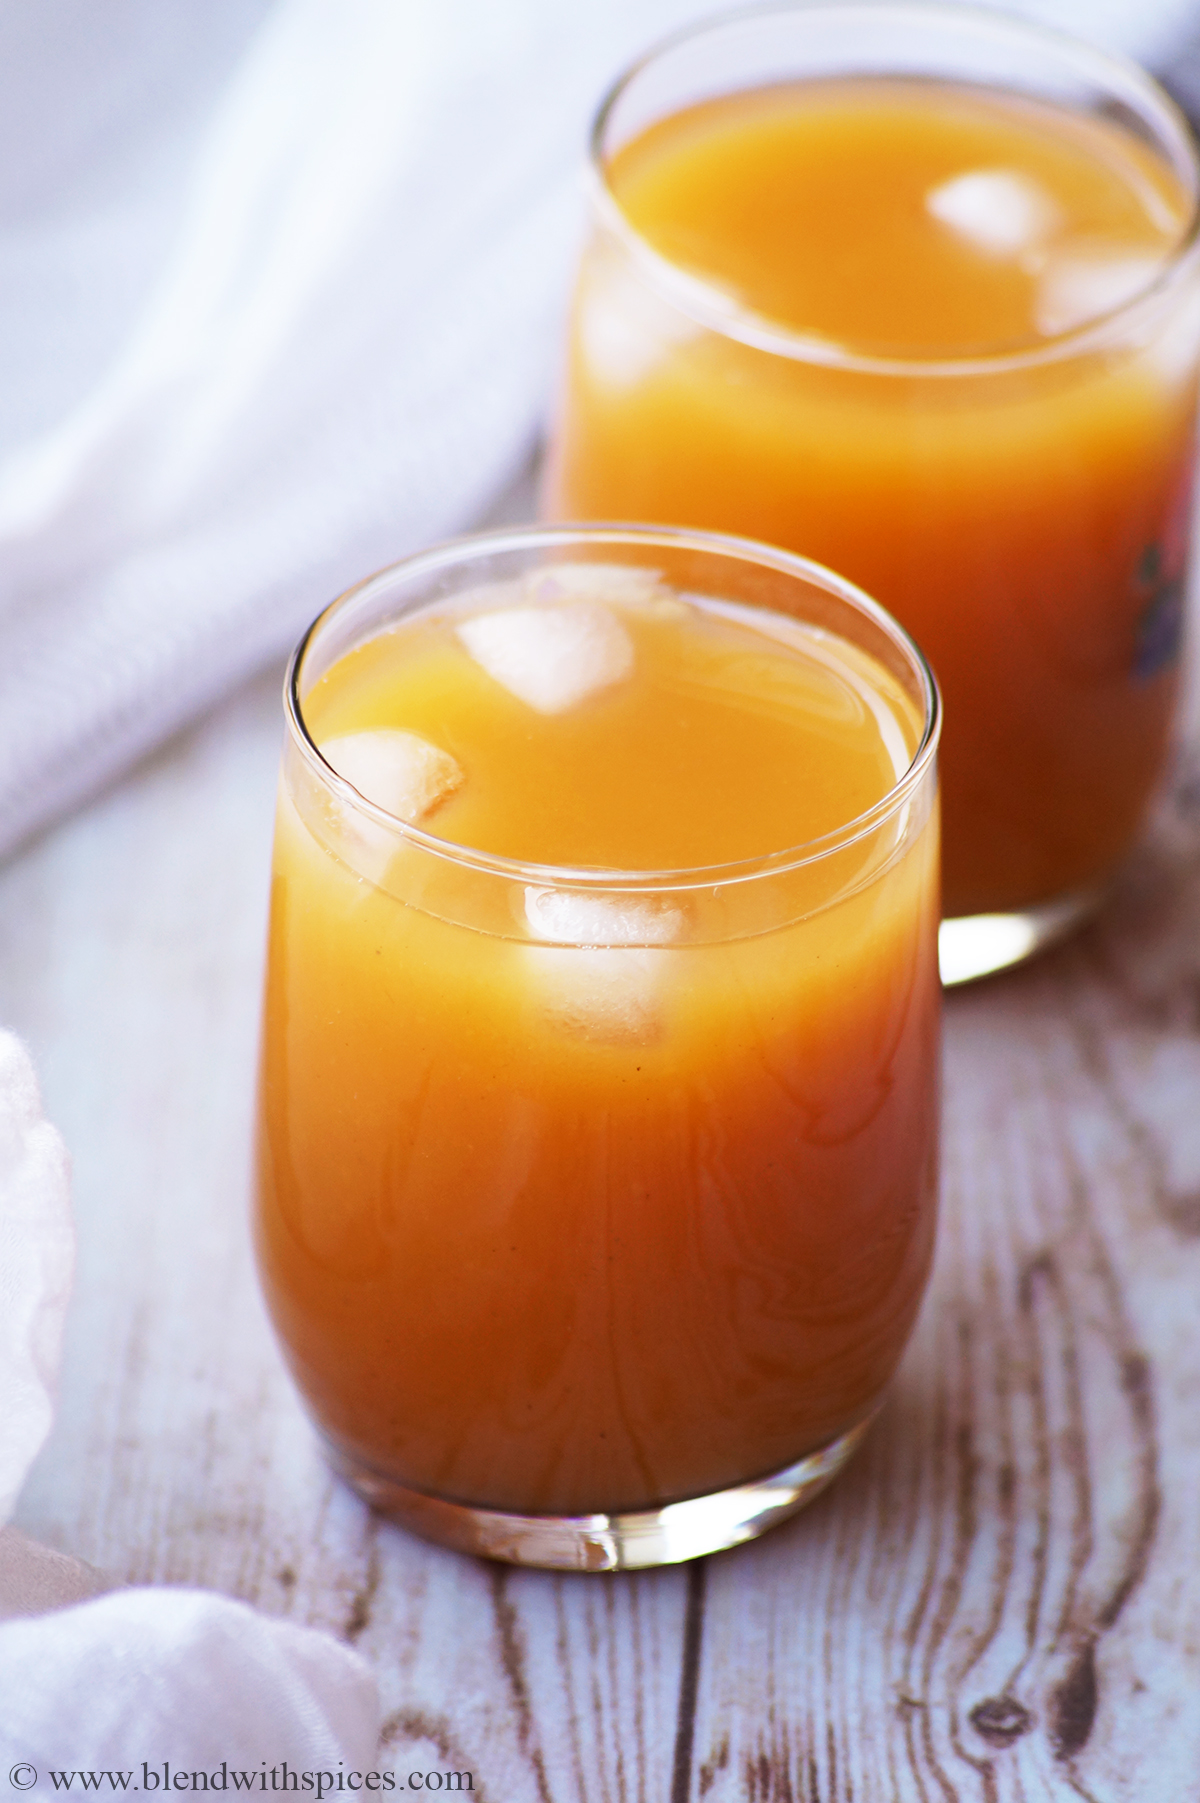 mango drink served in two glasses with ice cubes on a white background